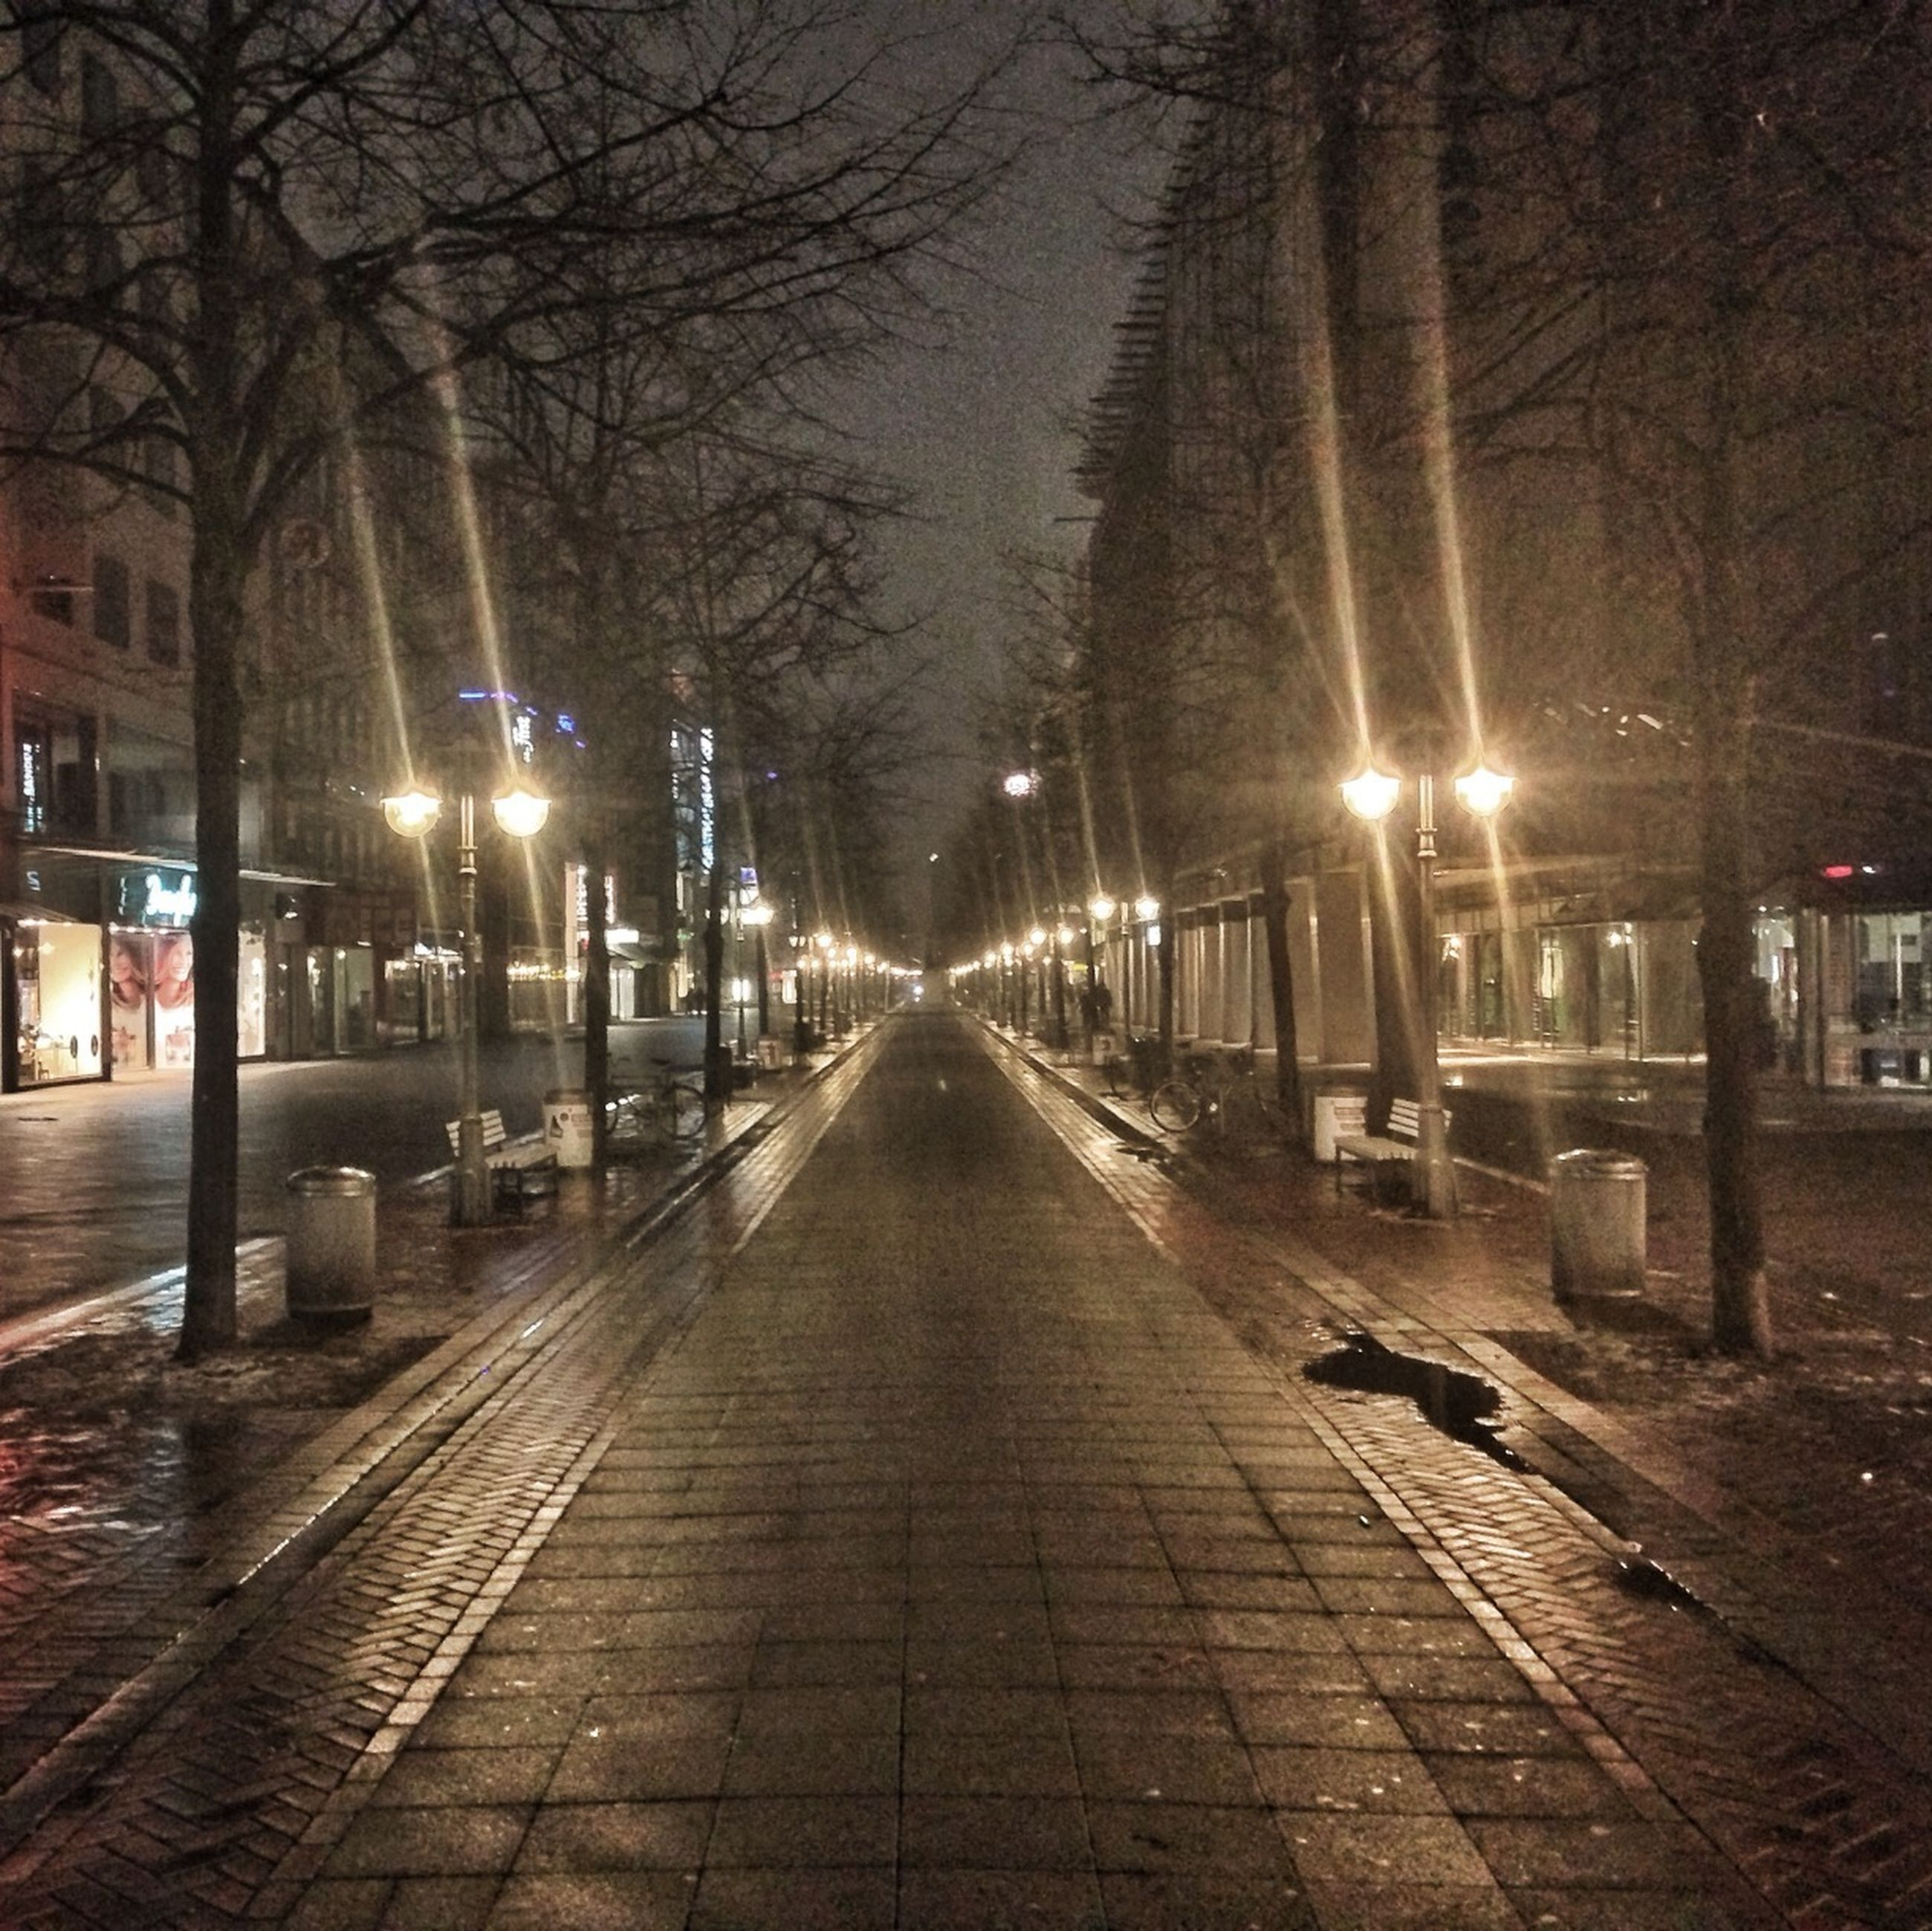 the way forward, illuminated, transportation, street light, night, diminishing perspective, tree, city, vanishing point, bare tree, building exterior, street, lighting equipment, built structure, architecture, road, empty, outdoors, car, mode of transport